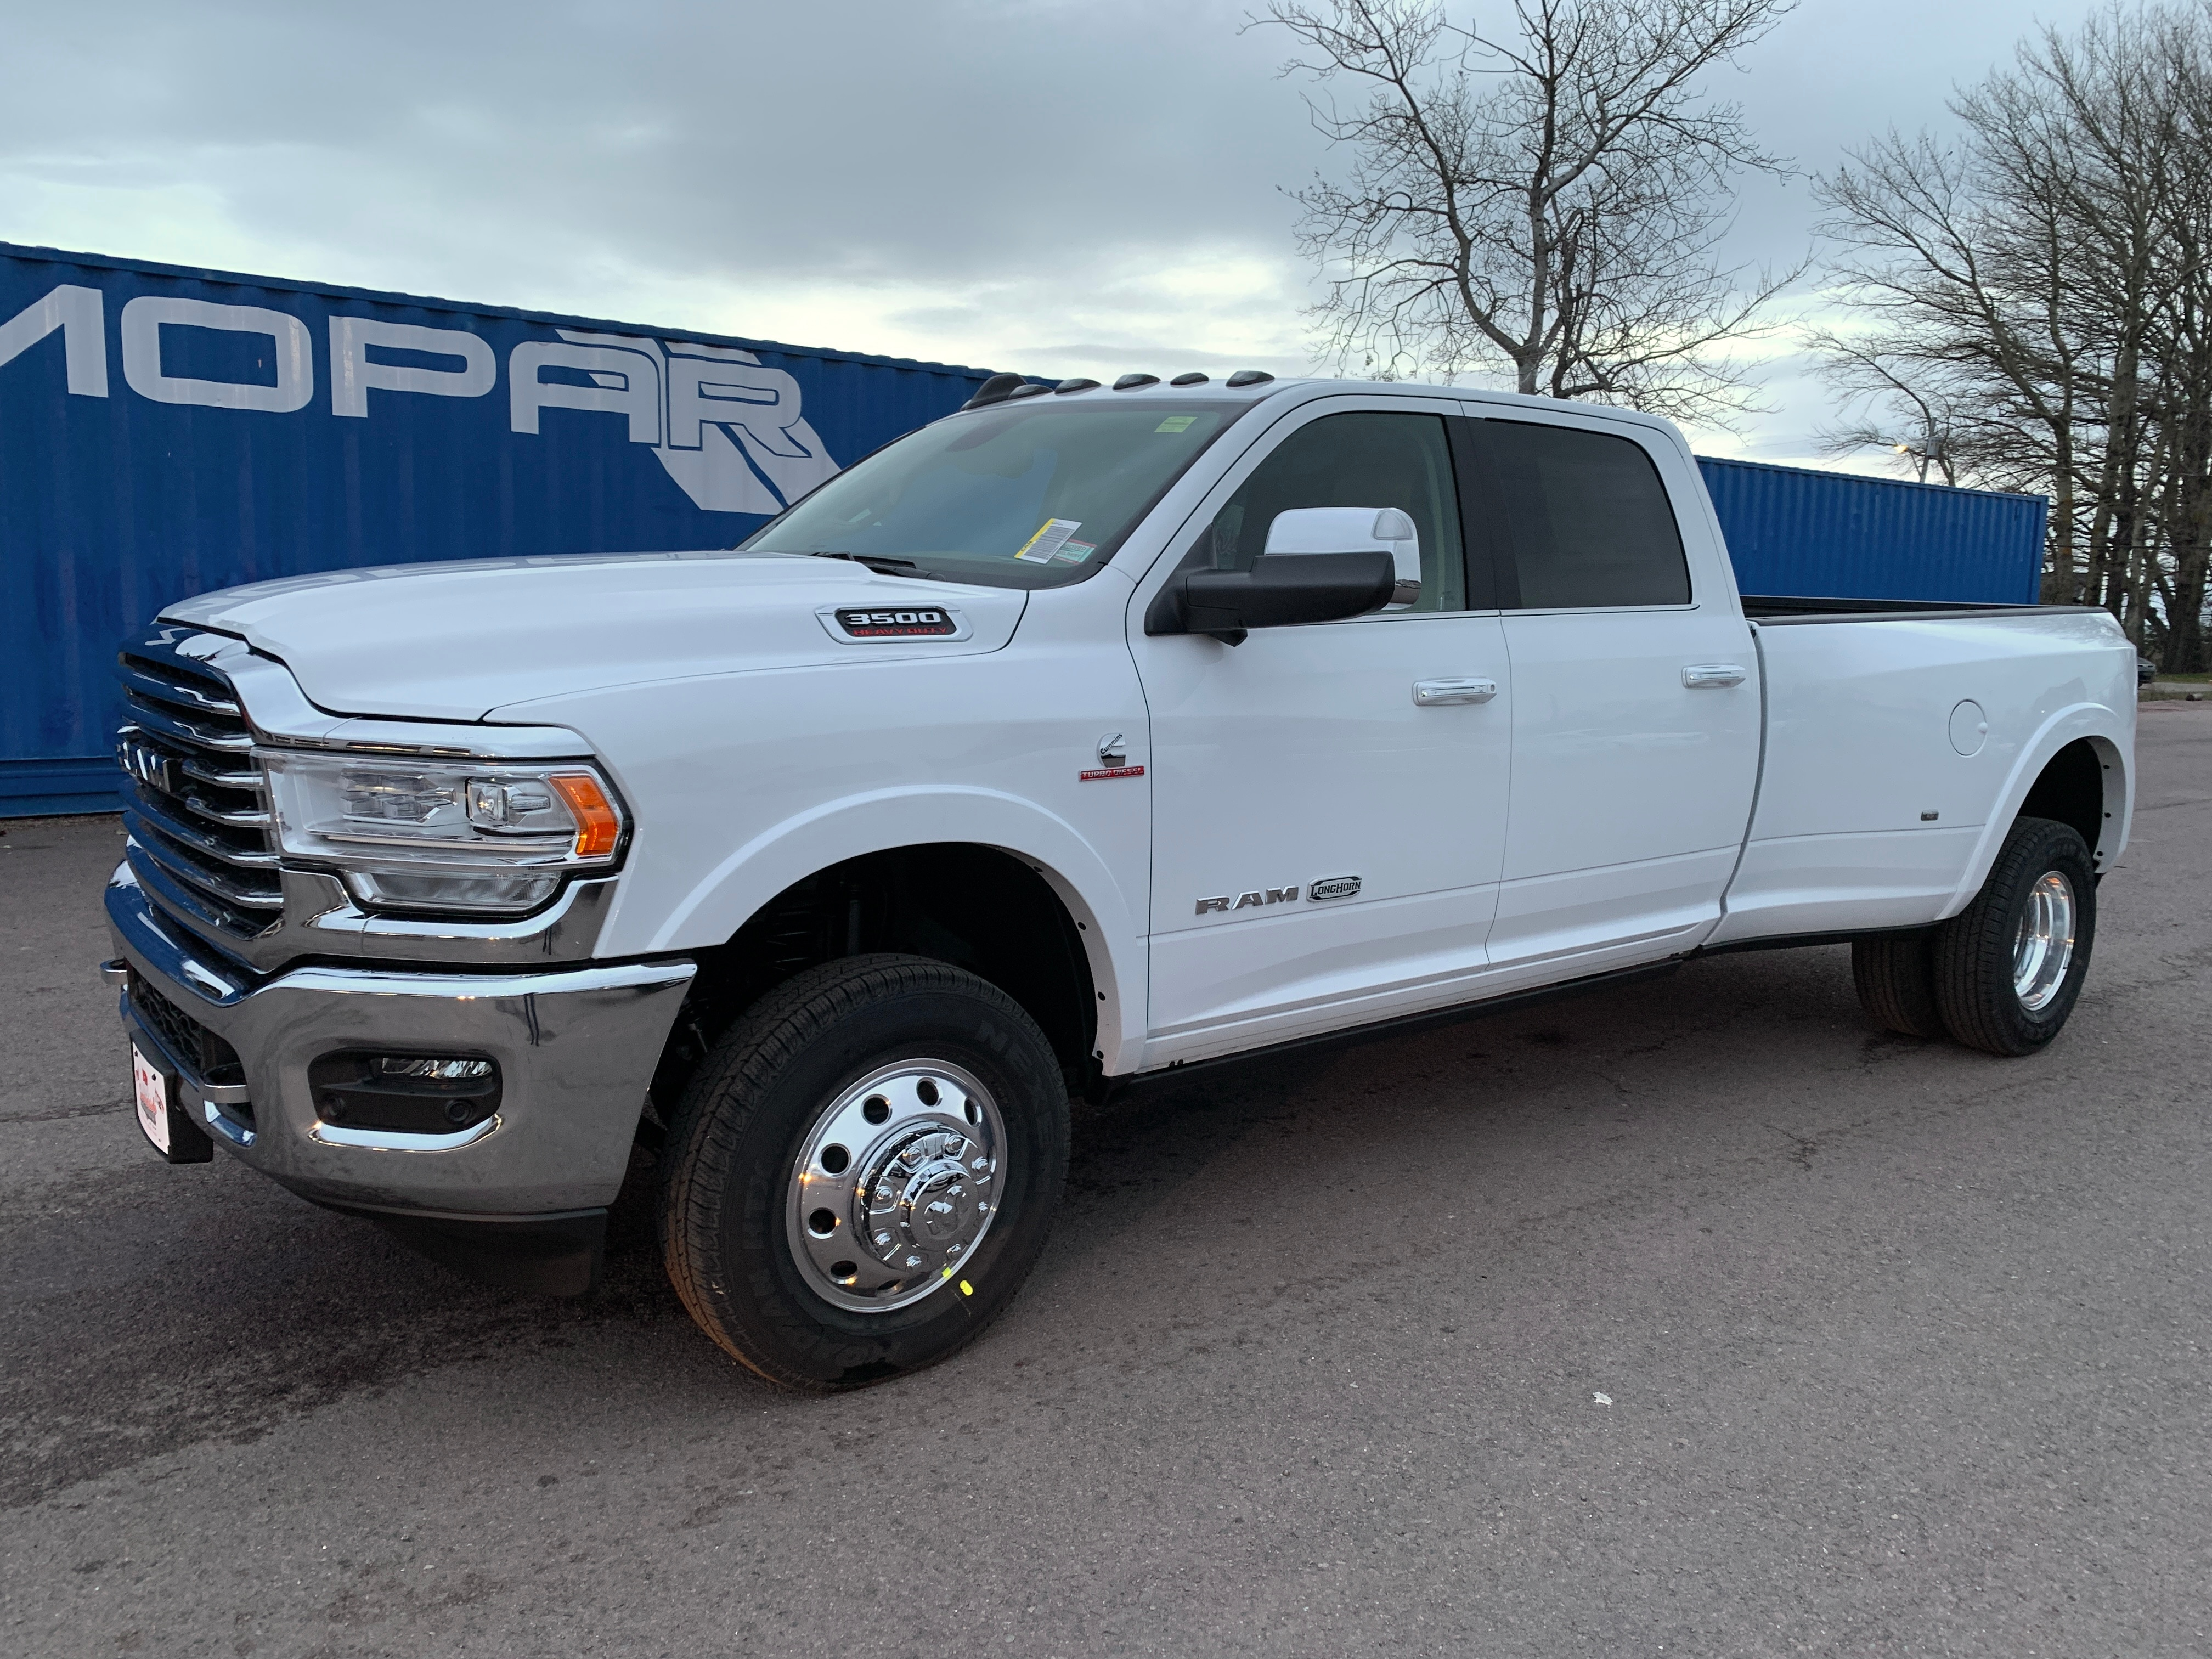 2020 Ram 3500 4x4 Crew Cab 8 ft. box 169.5 in. WB